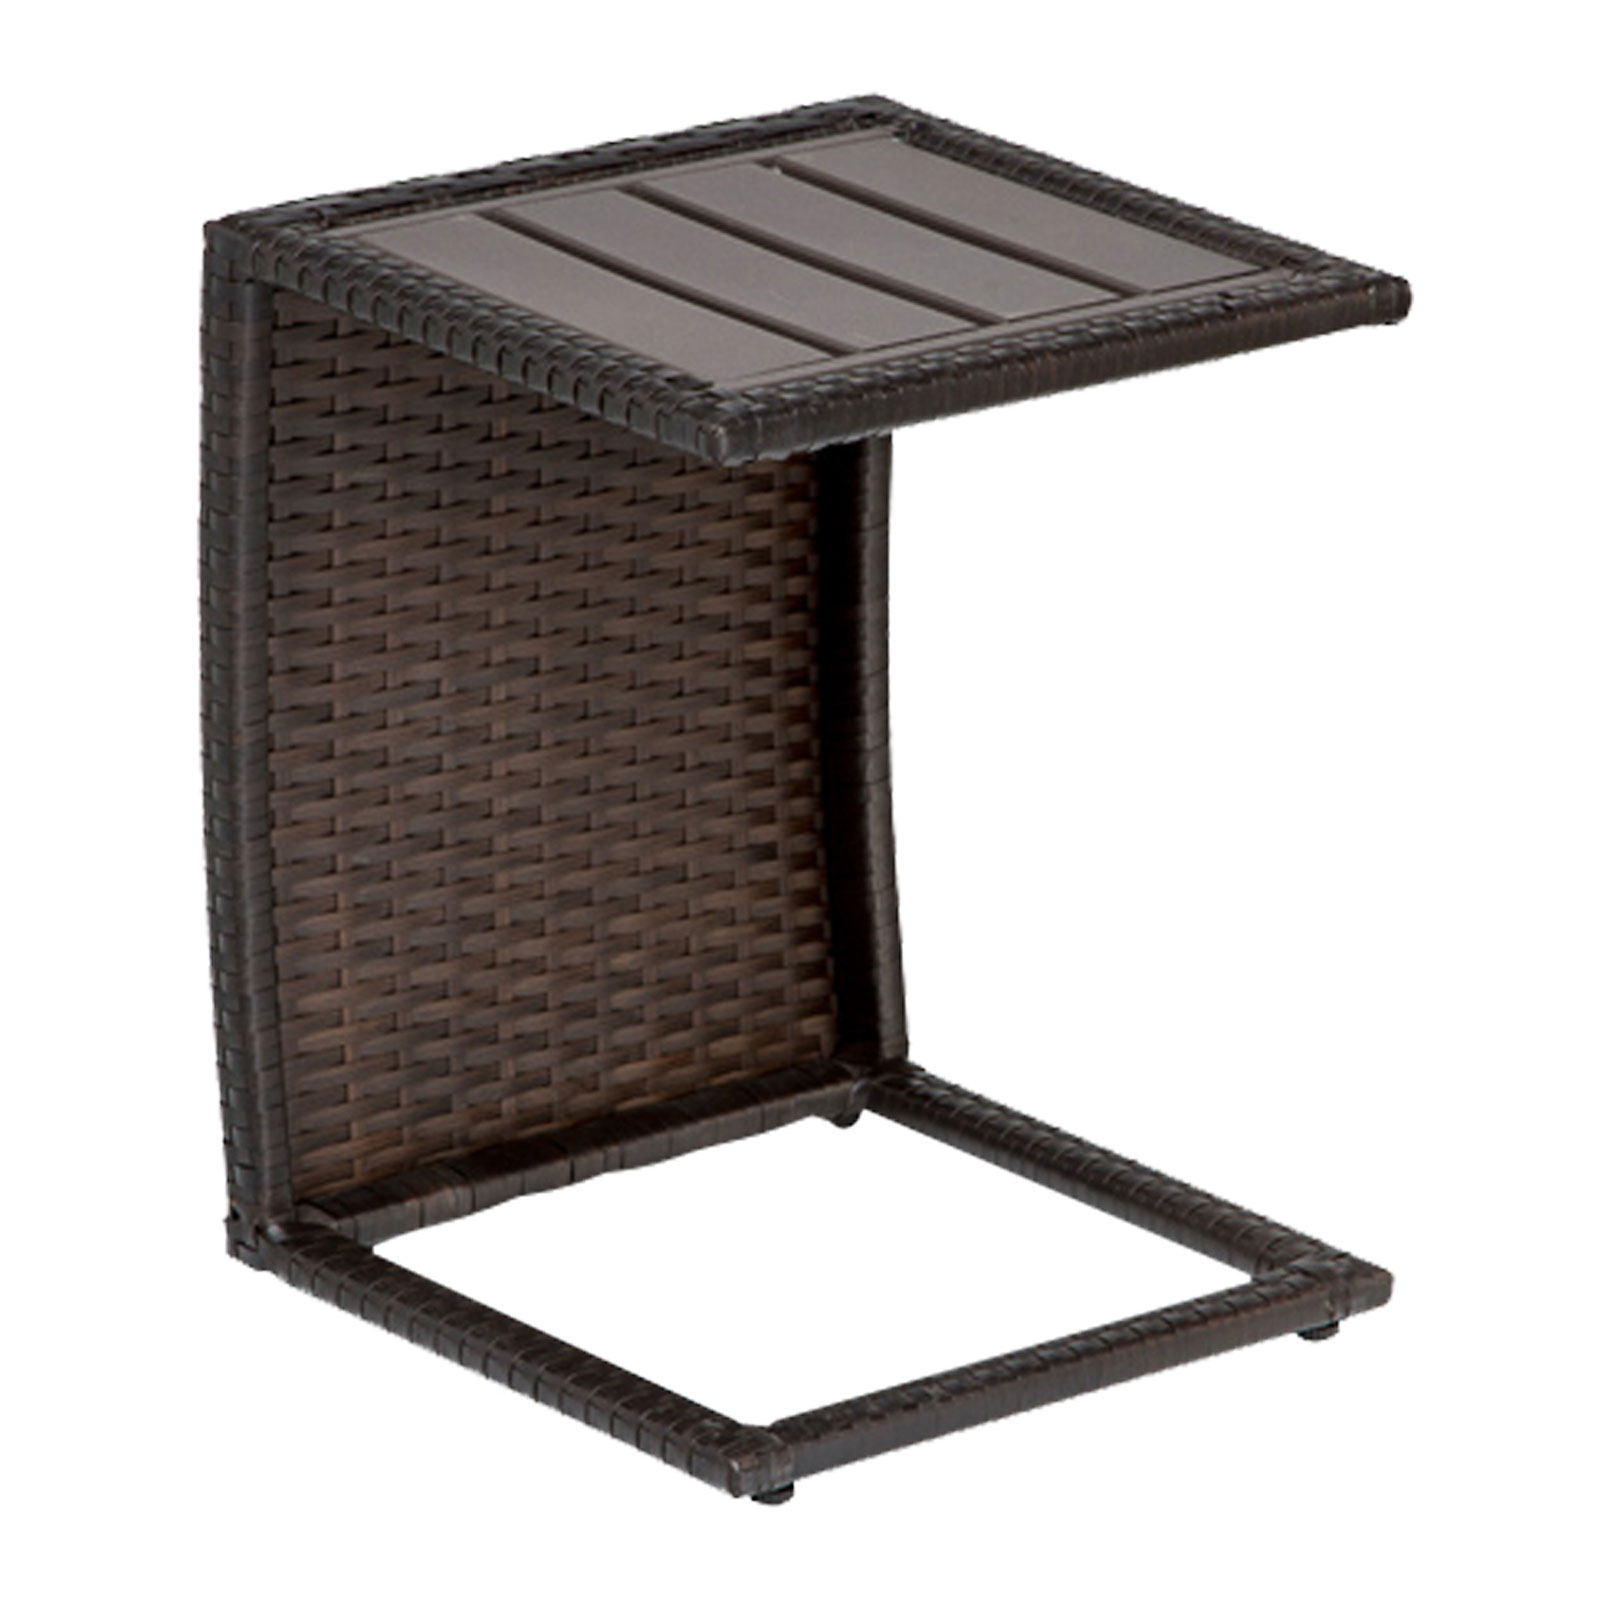 classic outdoor side table dark brown wicker design furnishings slim console with drawers ballard designs chair cushions round granite top coffee dale tiffany dragonfly lily lamp